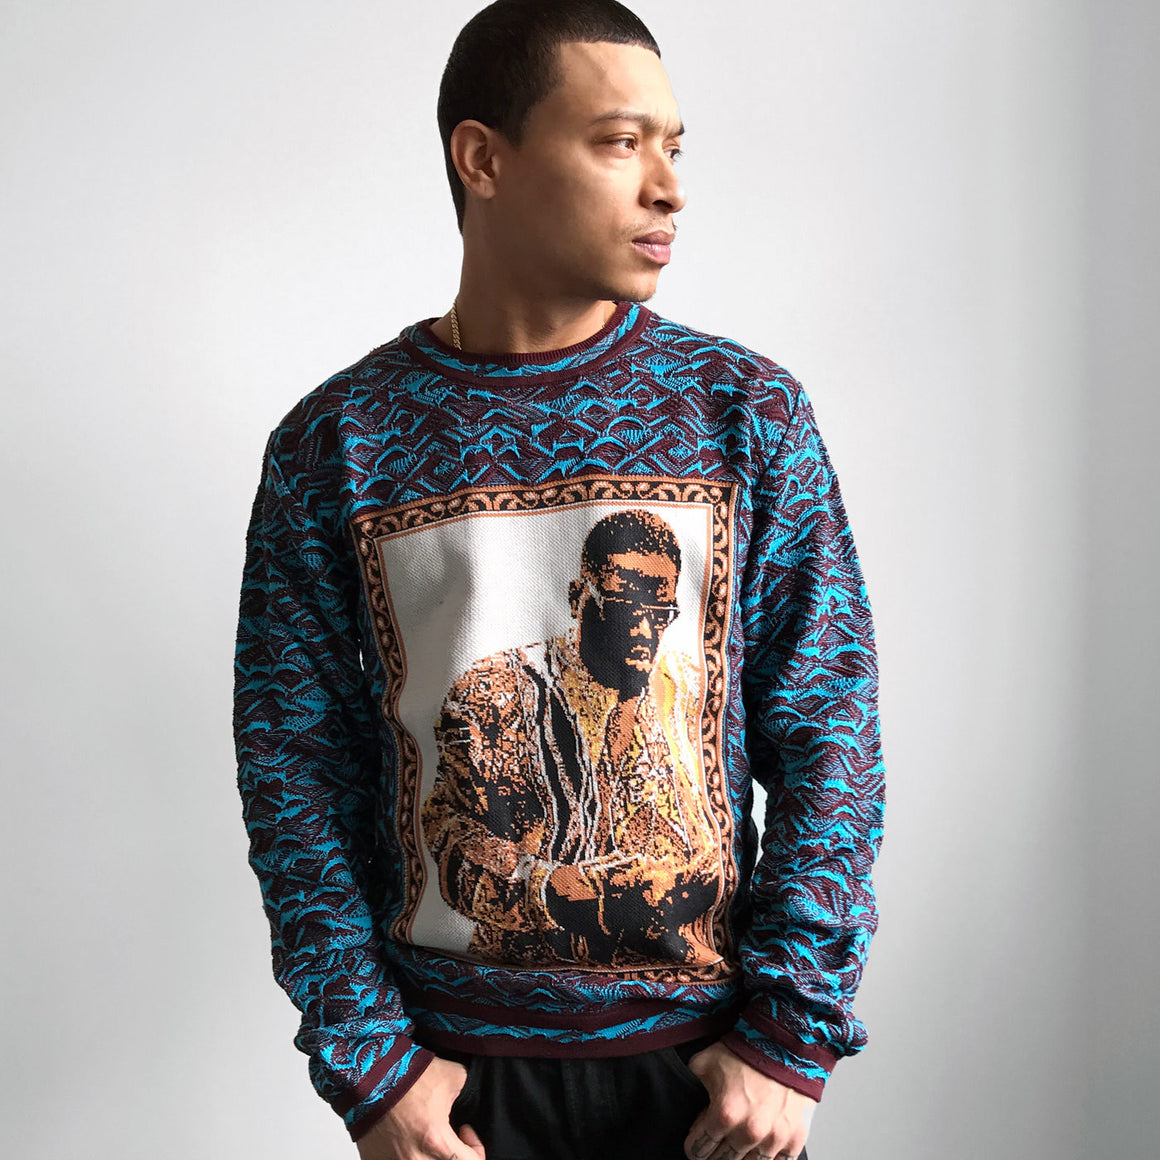 COOGI BIGGIE ART BASEL CREWNECK 3, Ltd. Ed.